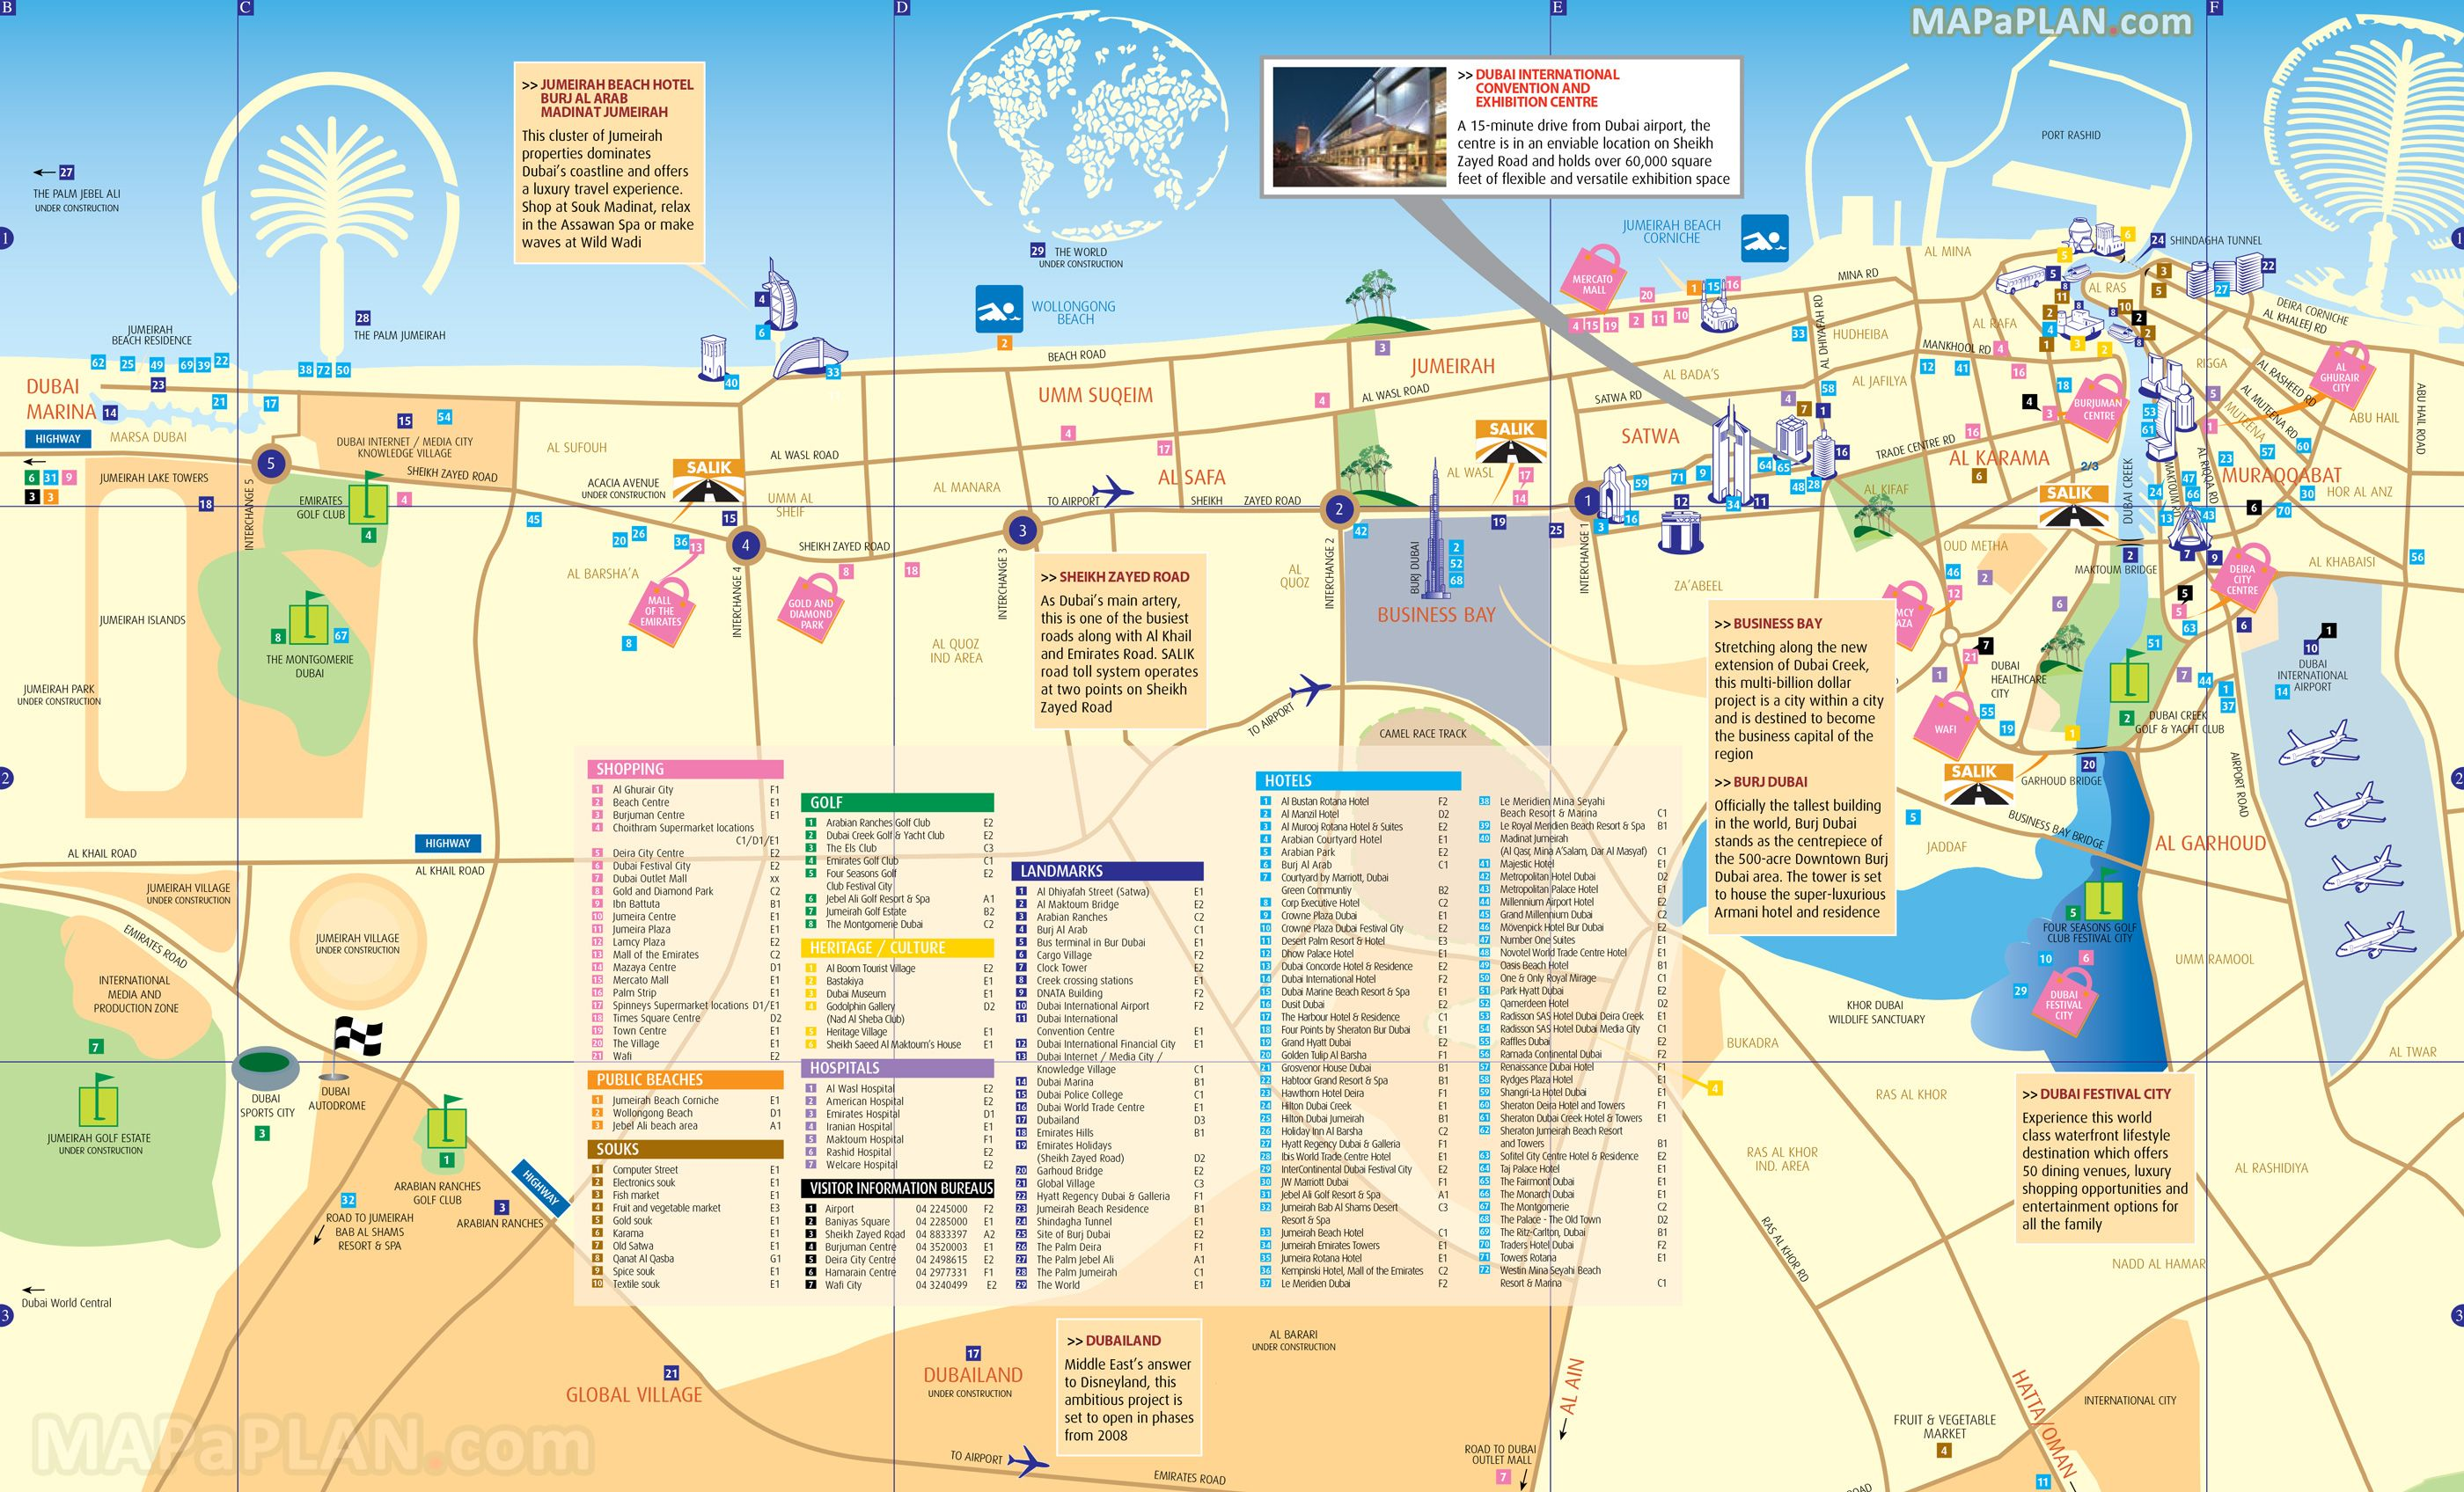 mapa turistico dubai Dubai map   A Z list of most interesting sites | UAE ↔ Dubai  mapa turistico dubai